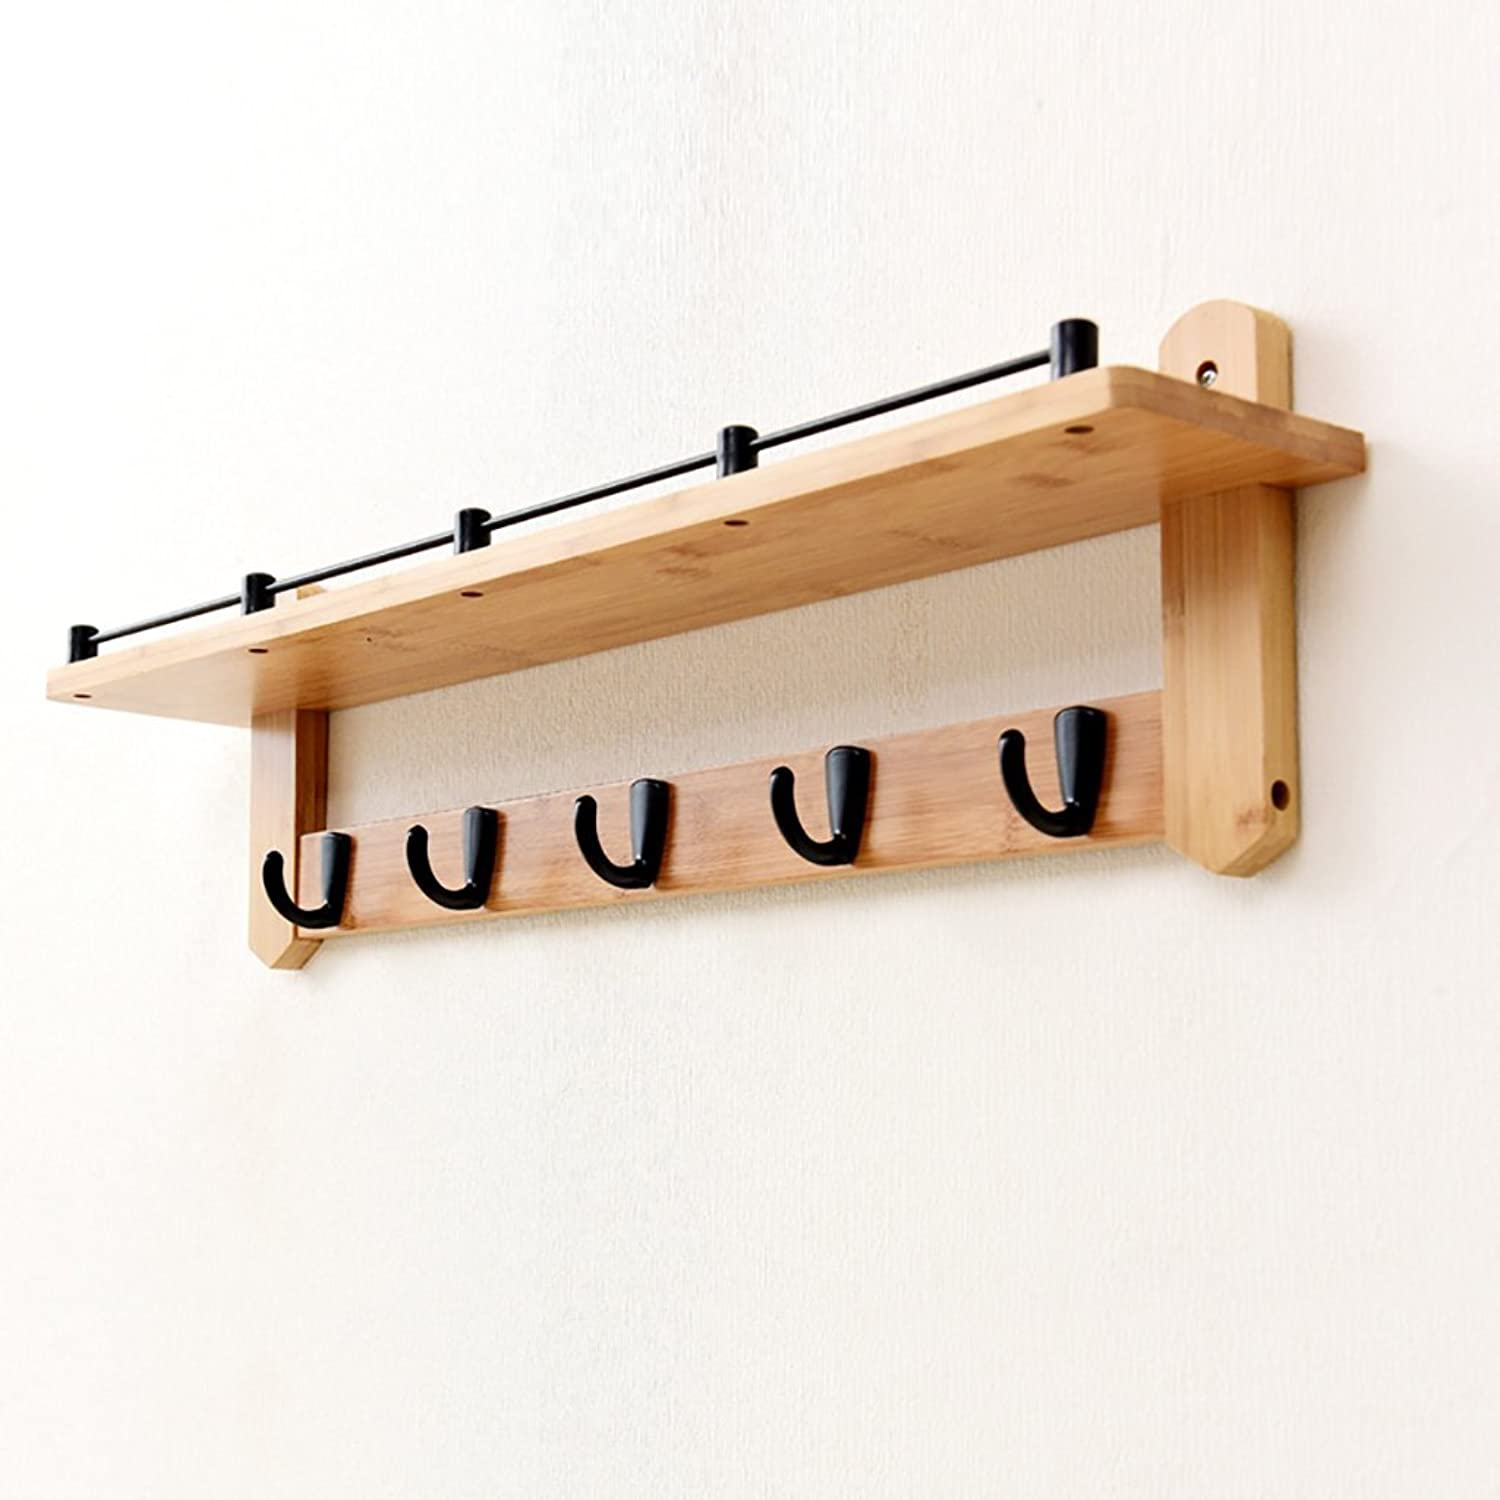 Wall Mounted Coat Rack, Wall-Hung Coat Hooks,Bedroom Living Room Entrance Simple Modern Bamboo System Wall-Mounted Coat Racks. (Size   66  20cm)